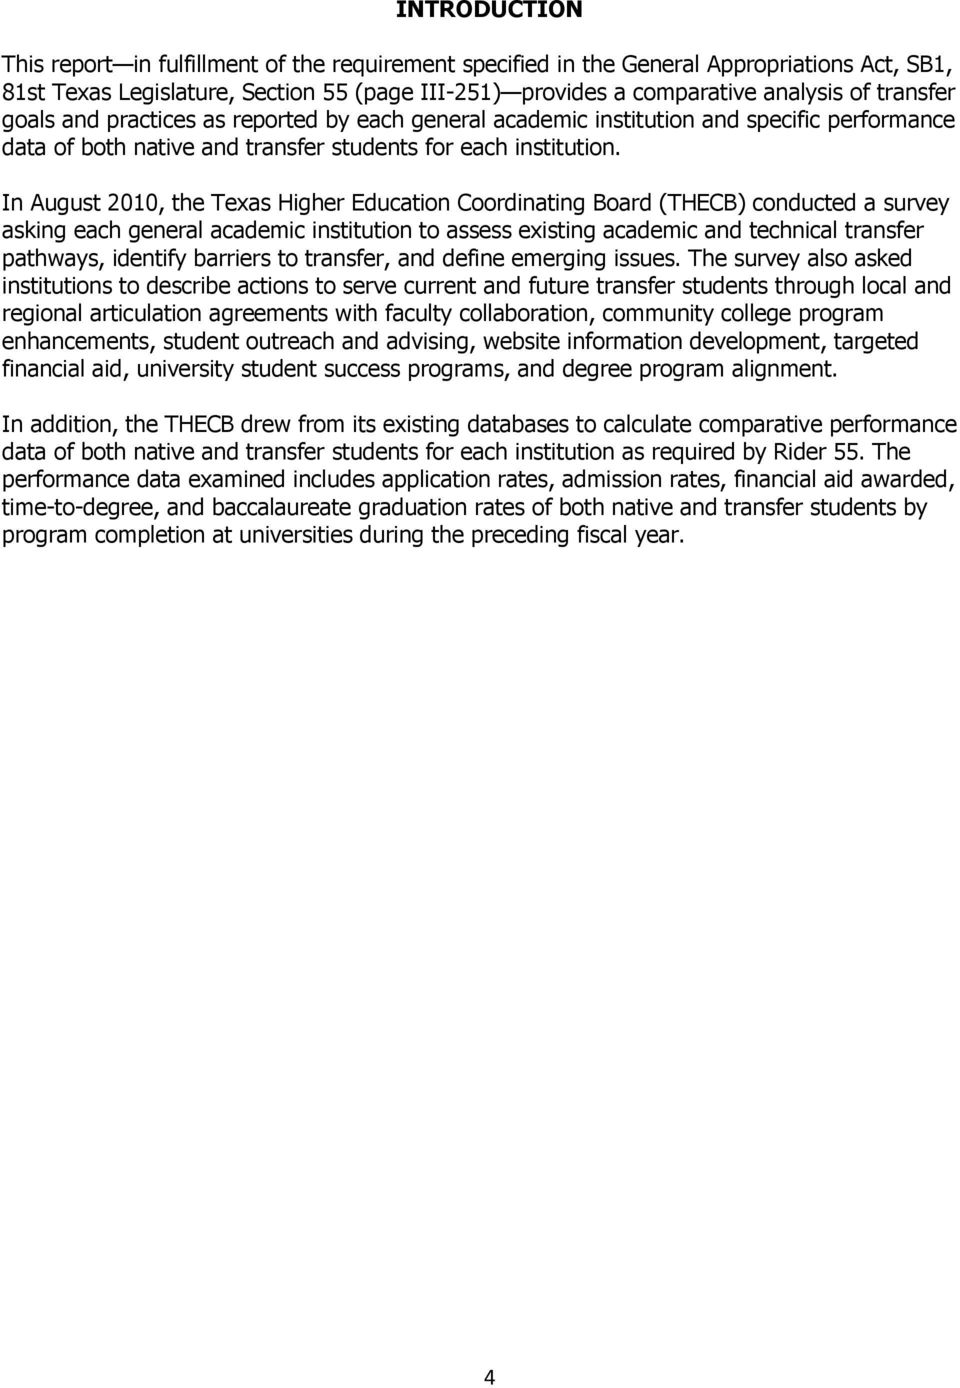 In August 2010, the Texas Higher Education Coordinating Board (THECB) conducted a survey asking each general academic institution to assess existing academic and technical transfer pathways, identify